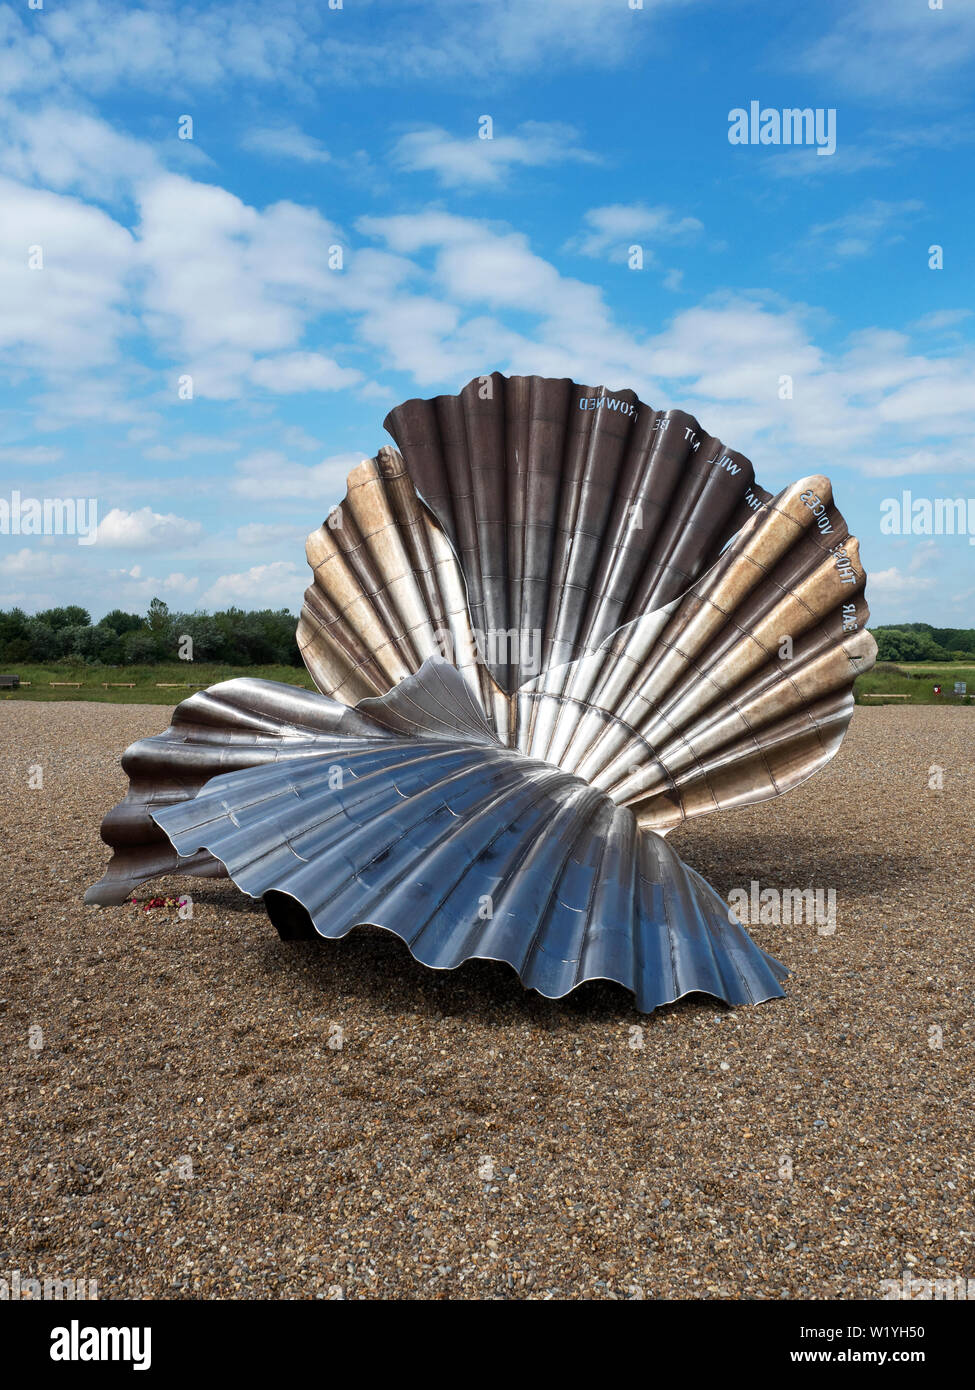 Scallop sculpture dedicated to Benjamin Britten by Maggi Hambling on the beach at Aldeburgh Suffolk England - Stock Image